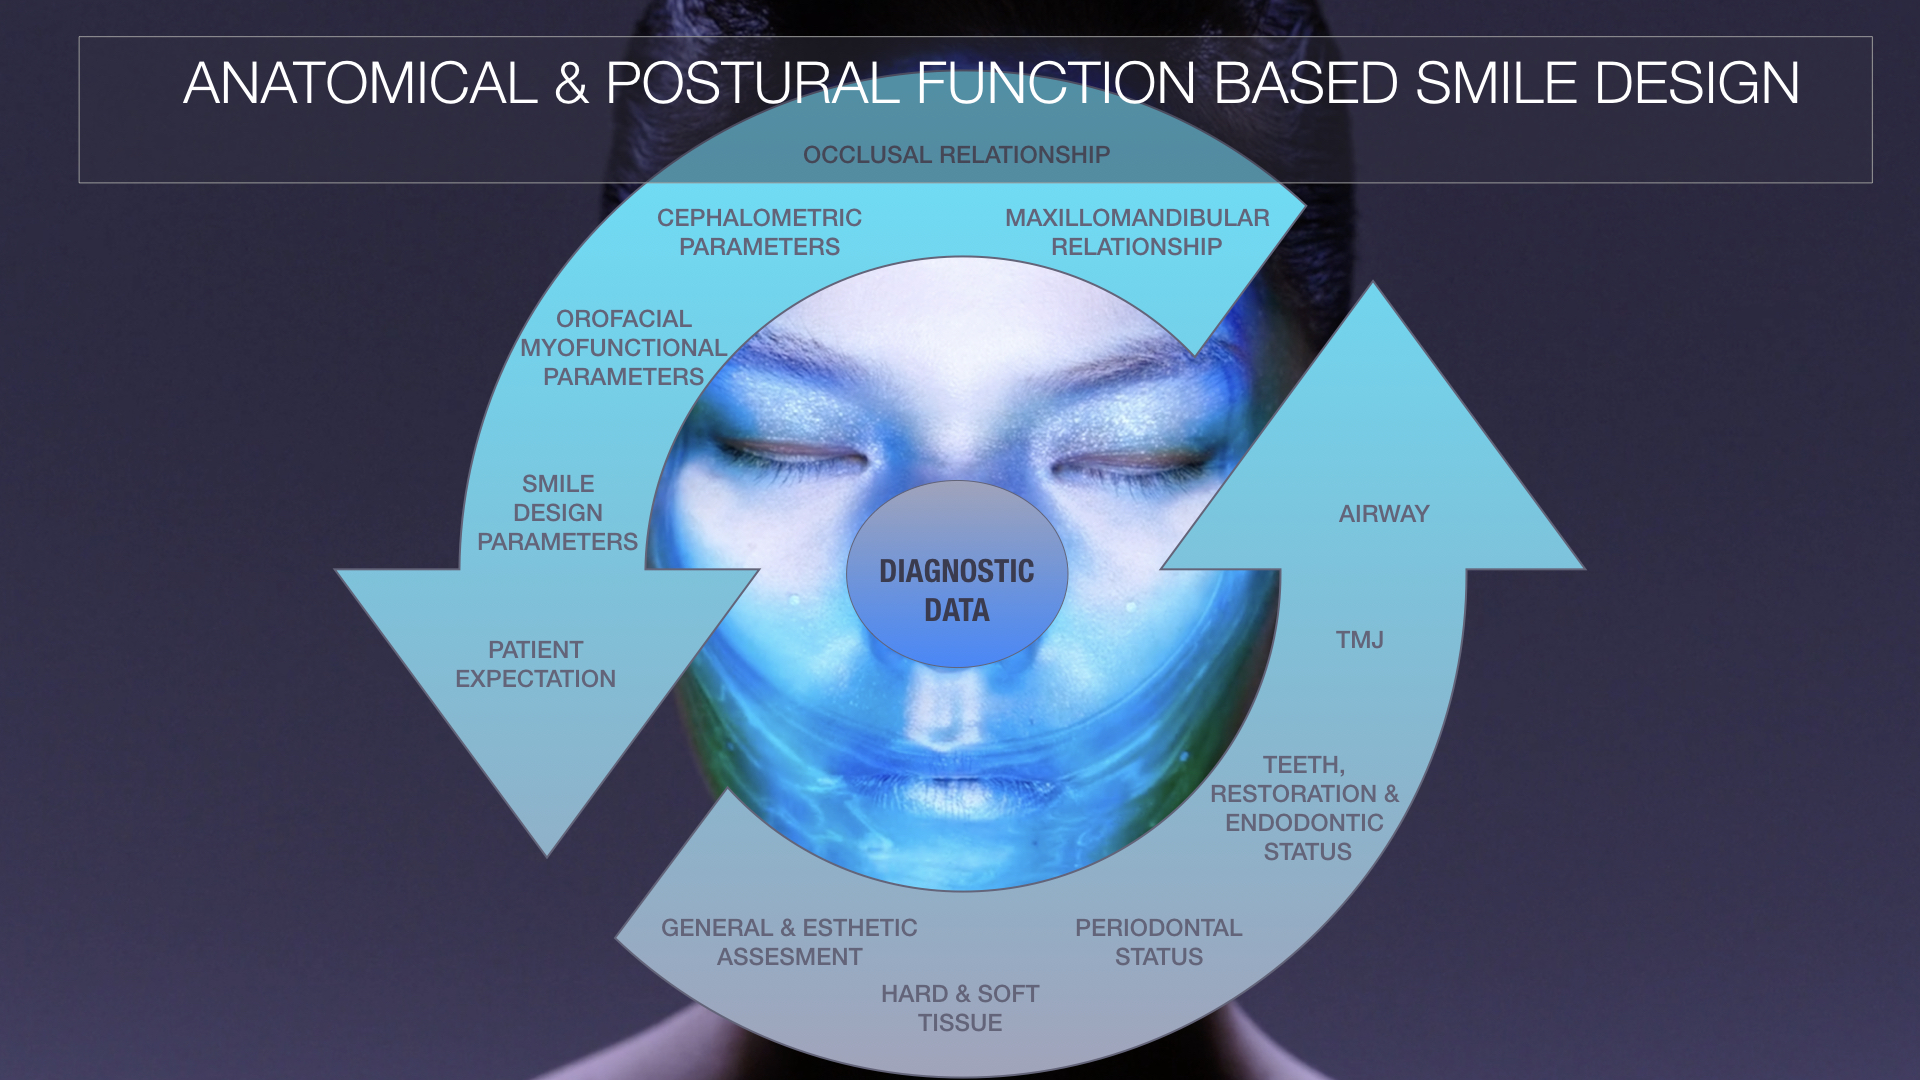 ANATOMICAL & POSTURAL FUNCTION BASED SMILE DESIGN